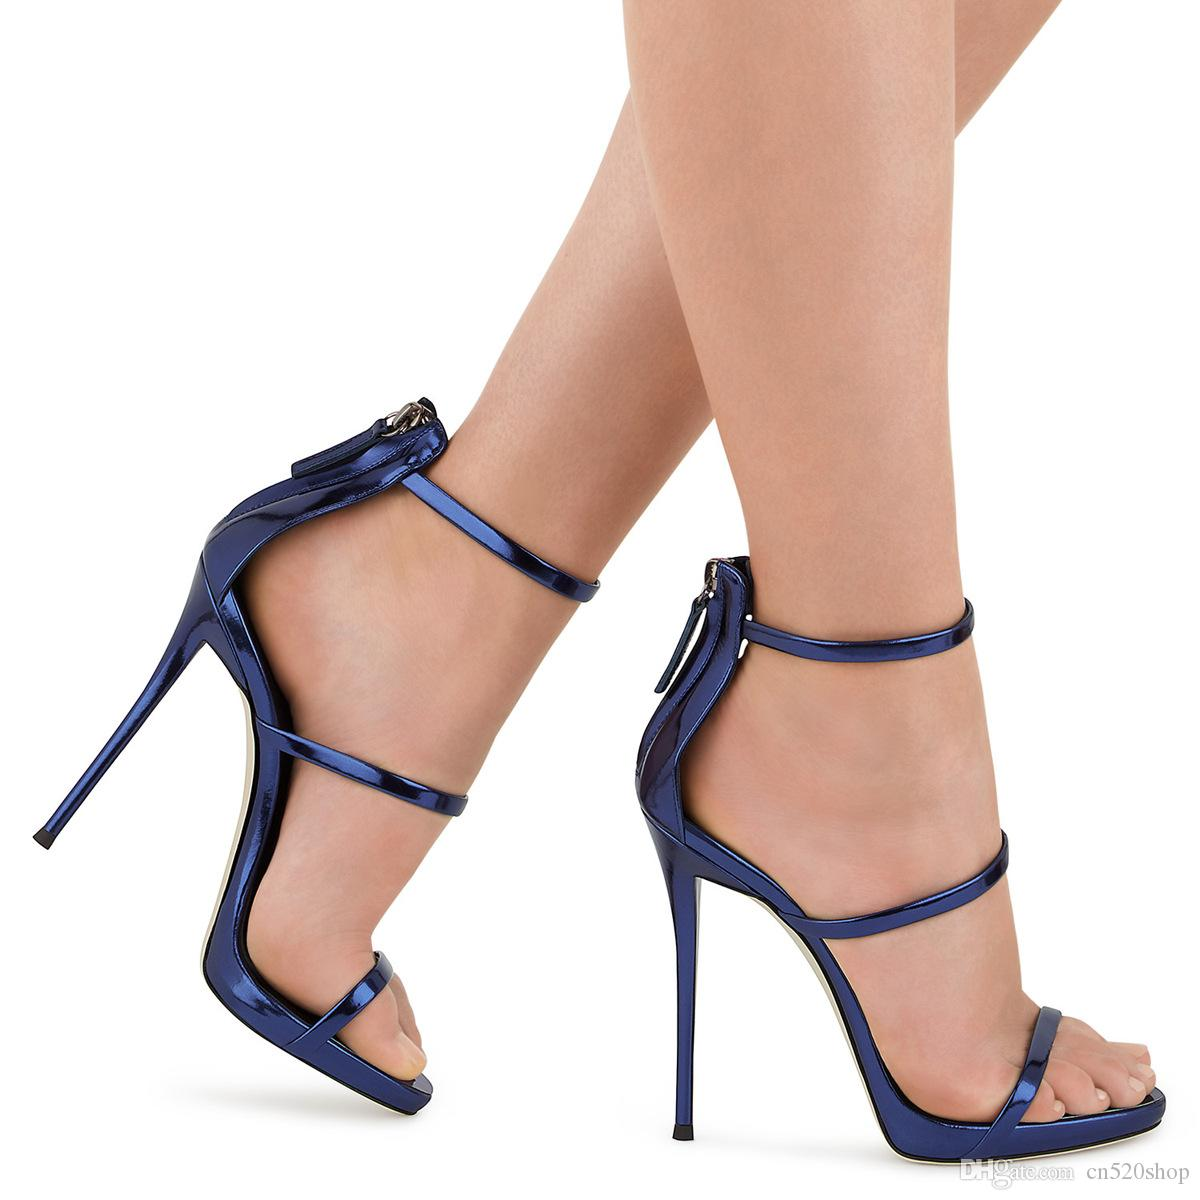 68bb7f4115066b 2019 New Fashion Women High Heels Sandals Night Out Party Shoes Open Toed  High Heels Sexy Solid Color Women Pumps Plus Size 34 44 Shoes Uk Flat  Sandals From ...